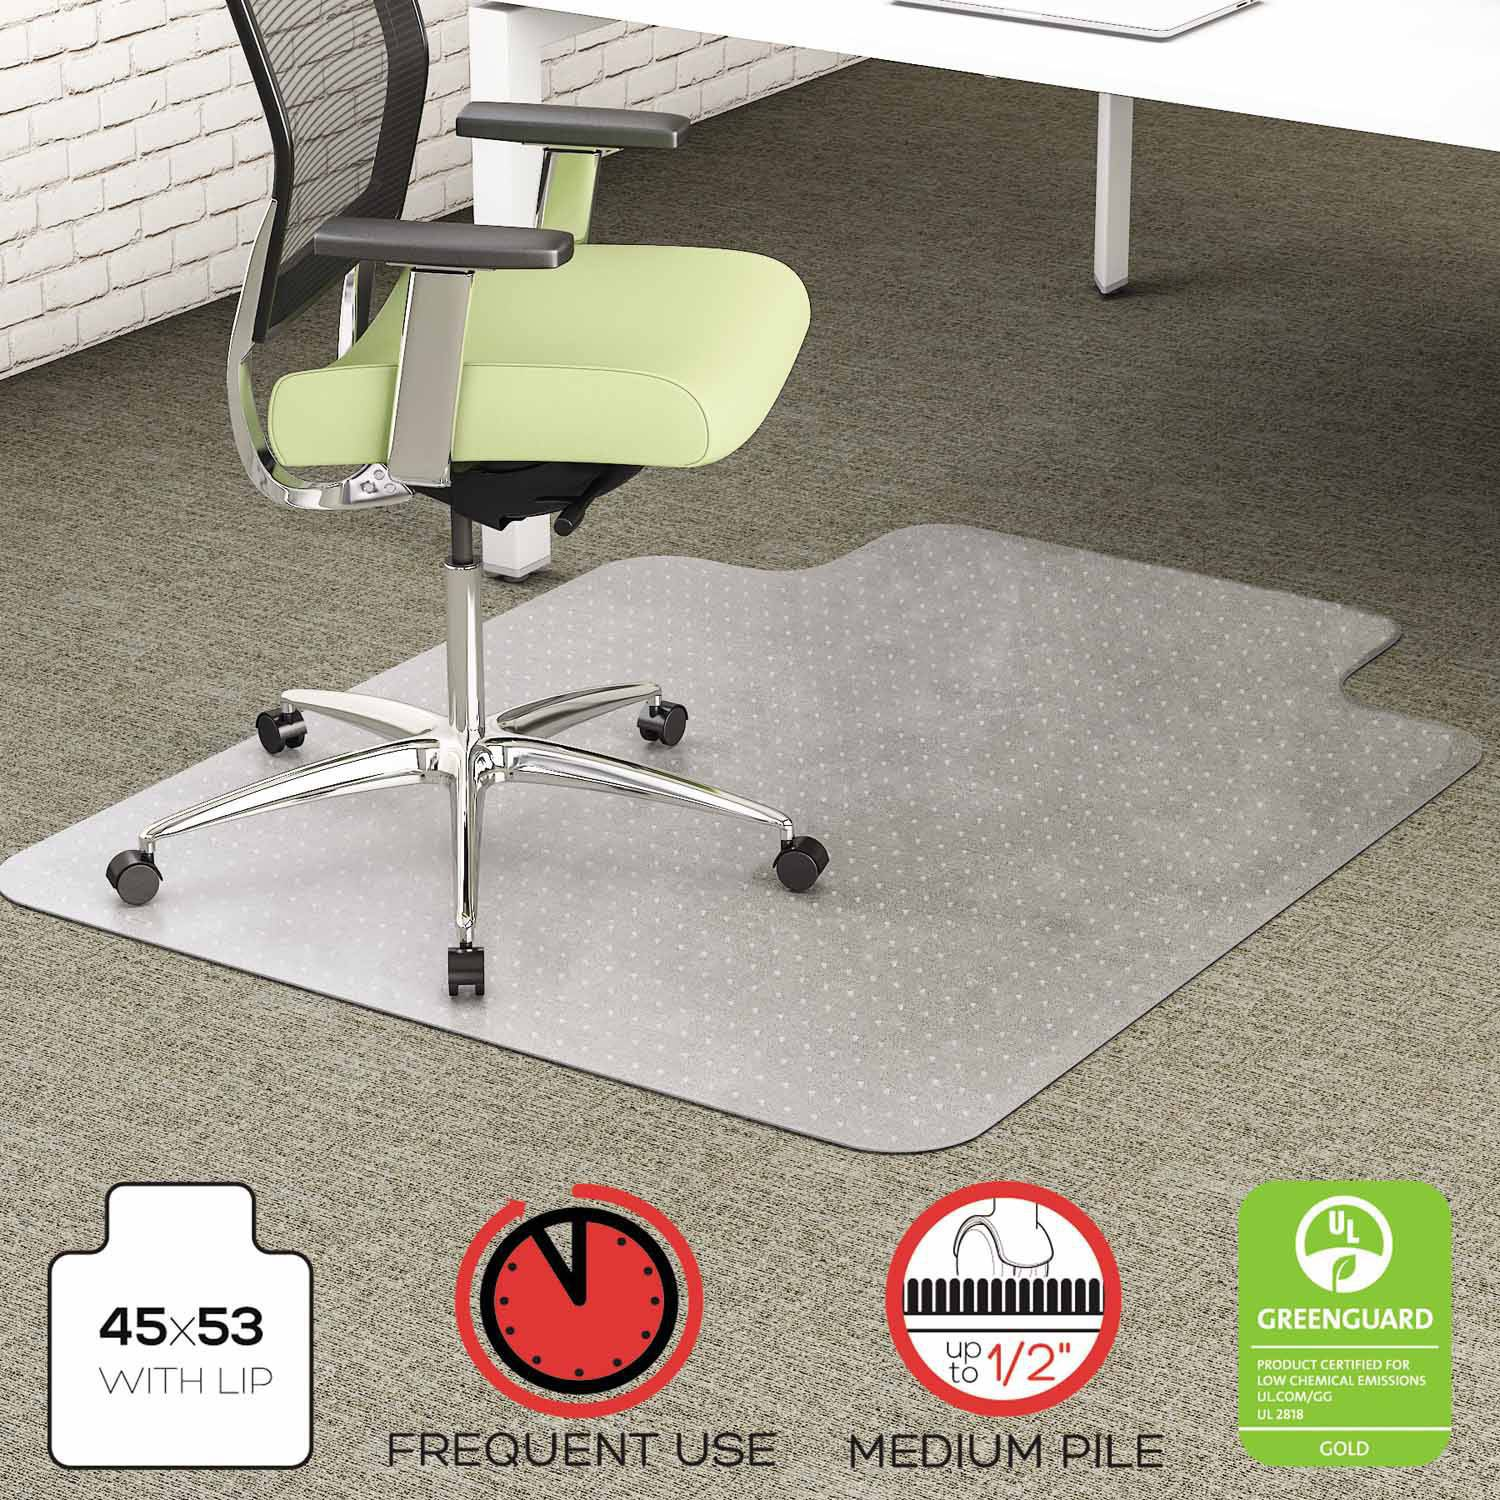 "deflecto EnvironMat Recycled Anytime Use Chair Mat, Med Pile Carpet, 45"" x 53"" with Lip, Clear"